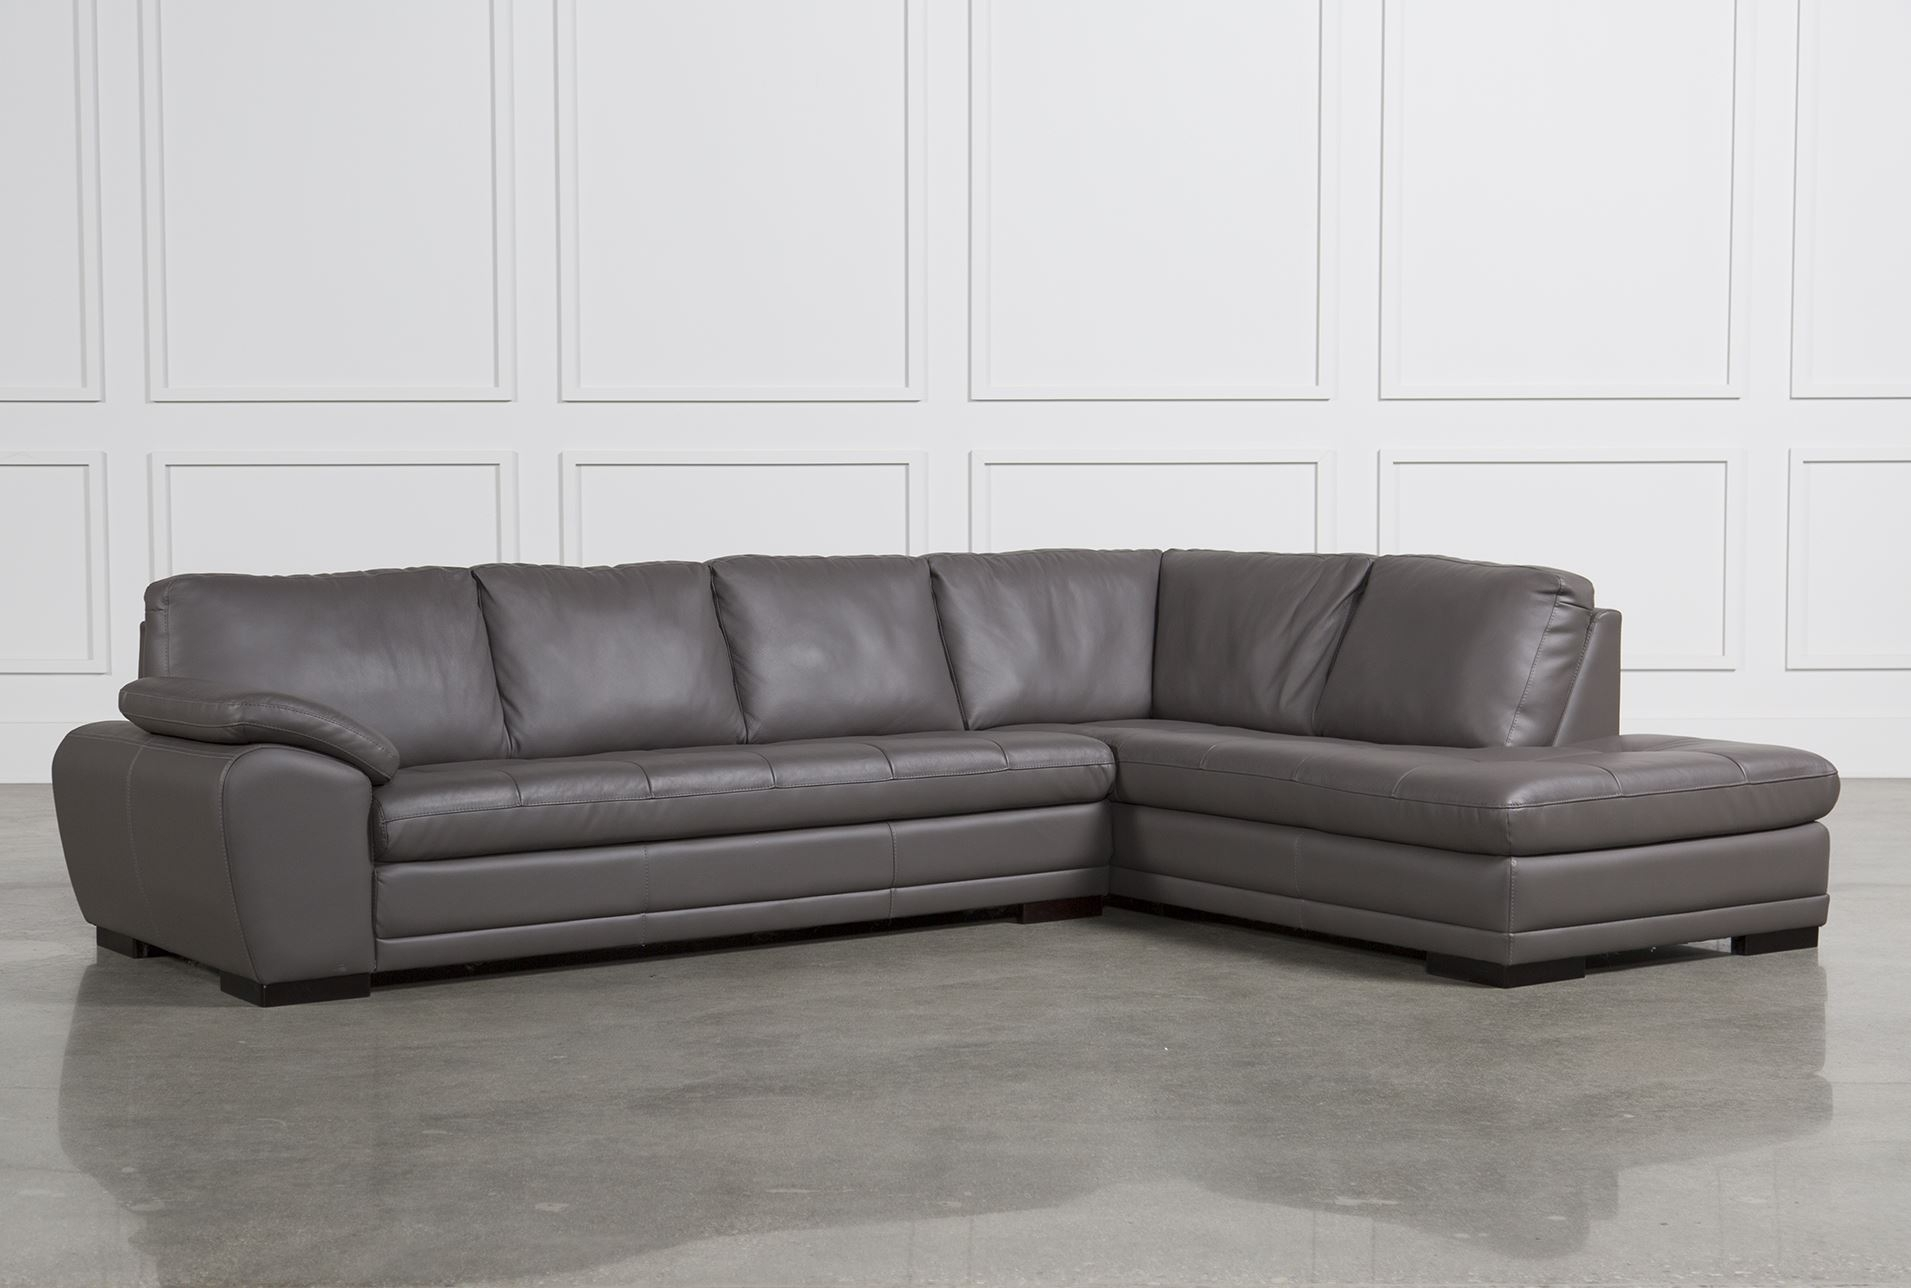 Excellent Leather Sectional Sofas For Vaughn Granite 2 Piece Throughout Living Spaces Sectional Sofas (Image 4 of 10)